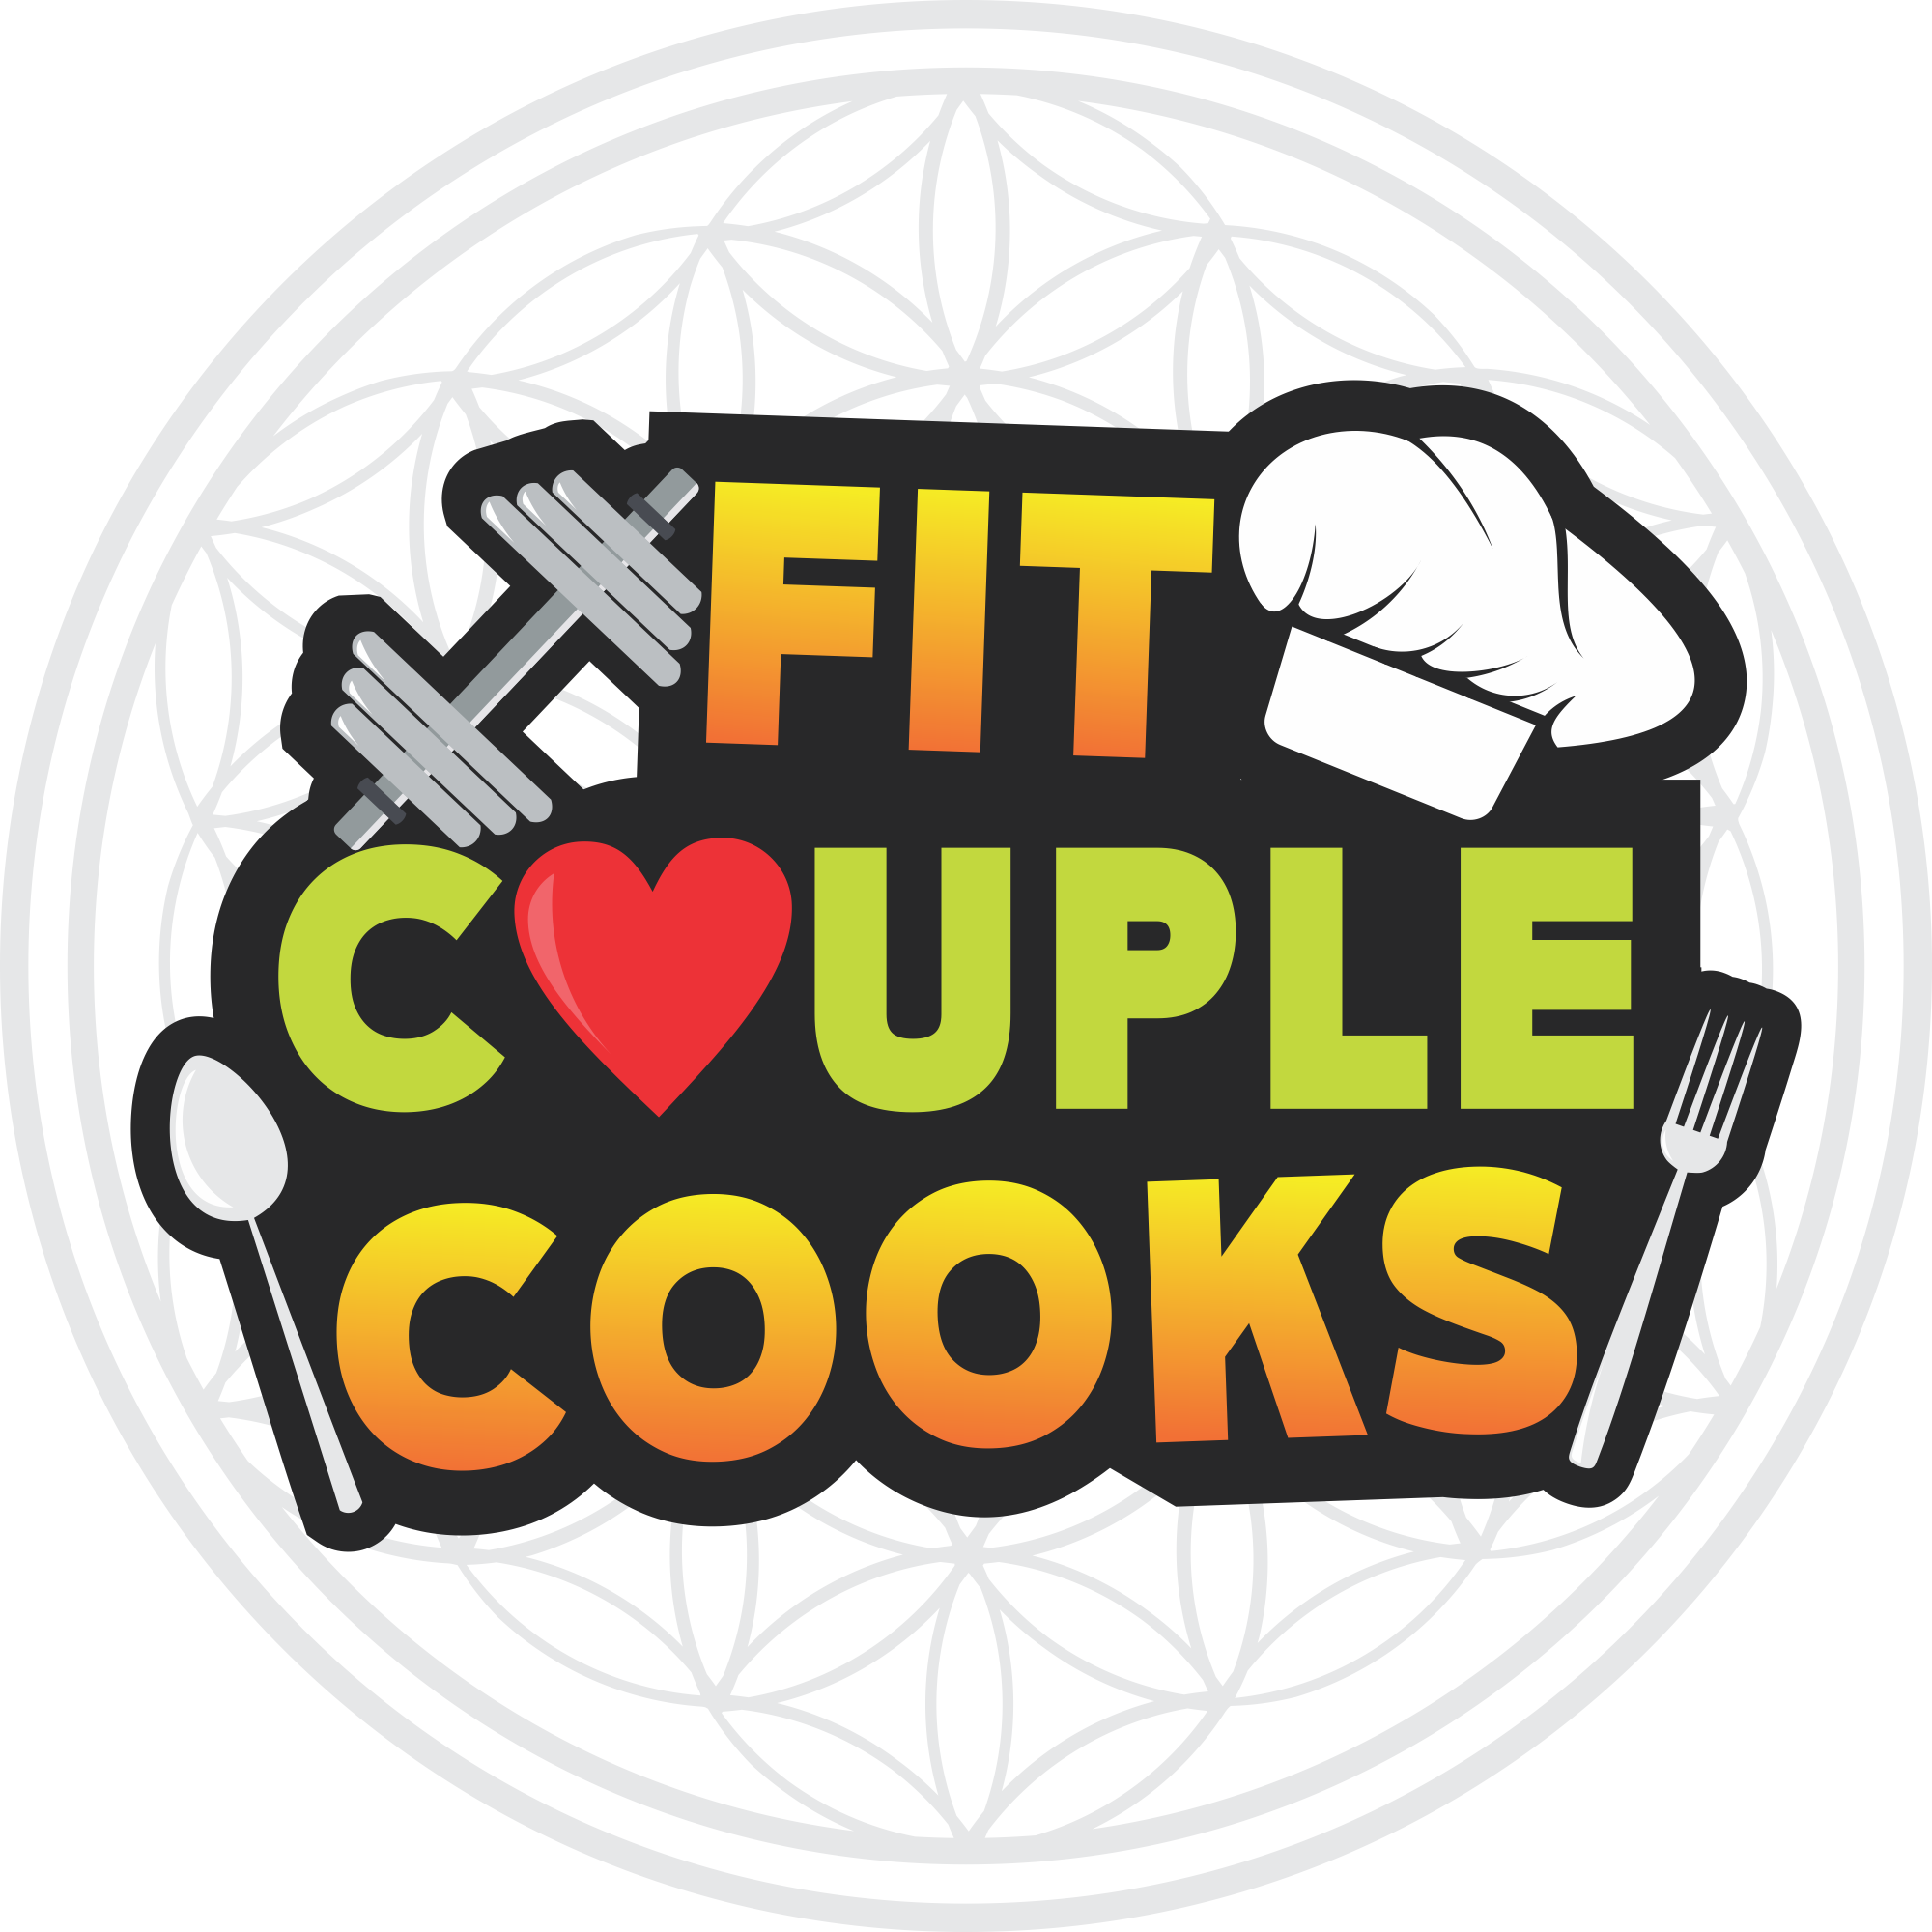 Eye Catching Logo for a YouTube Channel! Foodies! Fitness! Andddd GO!